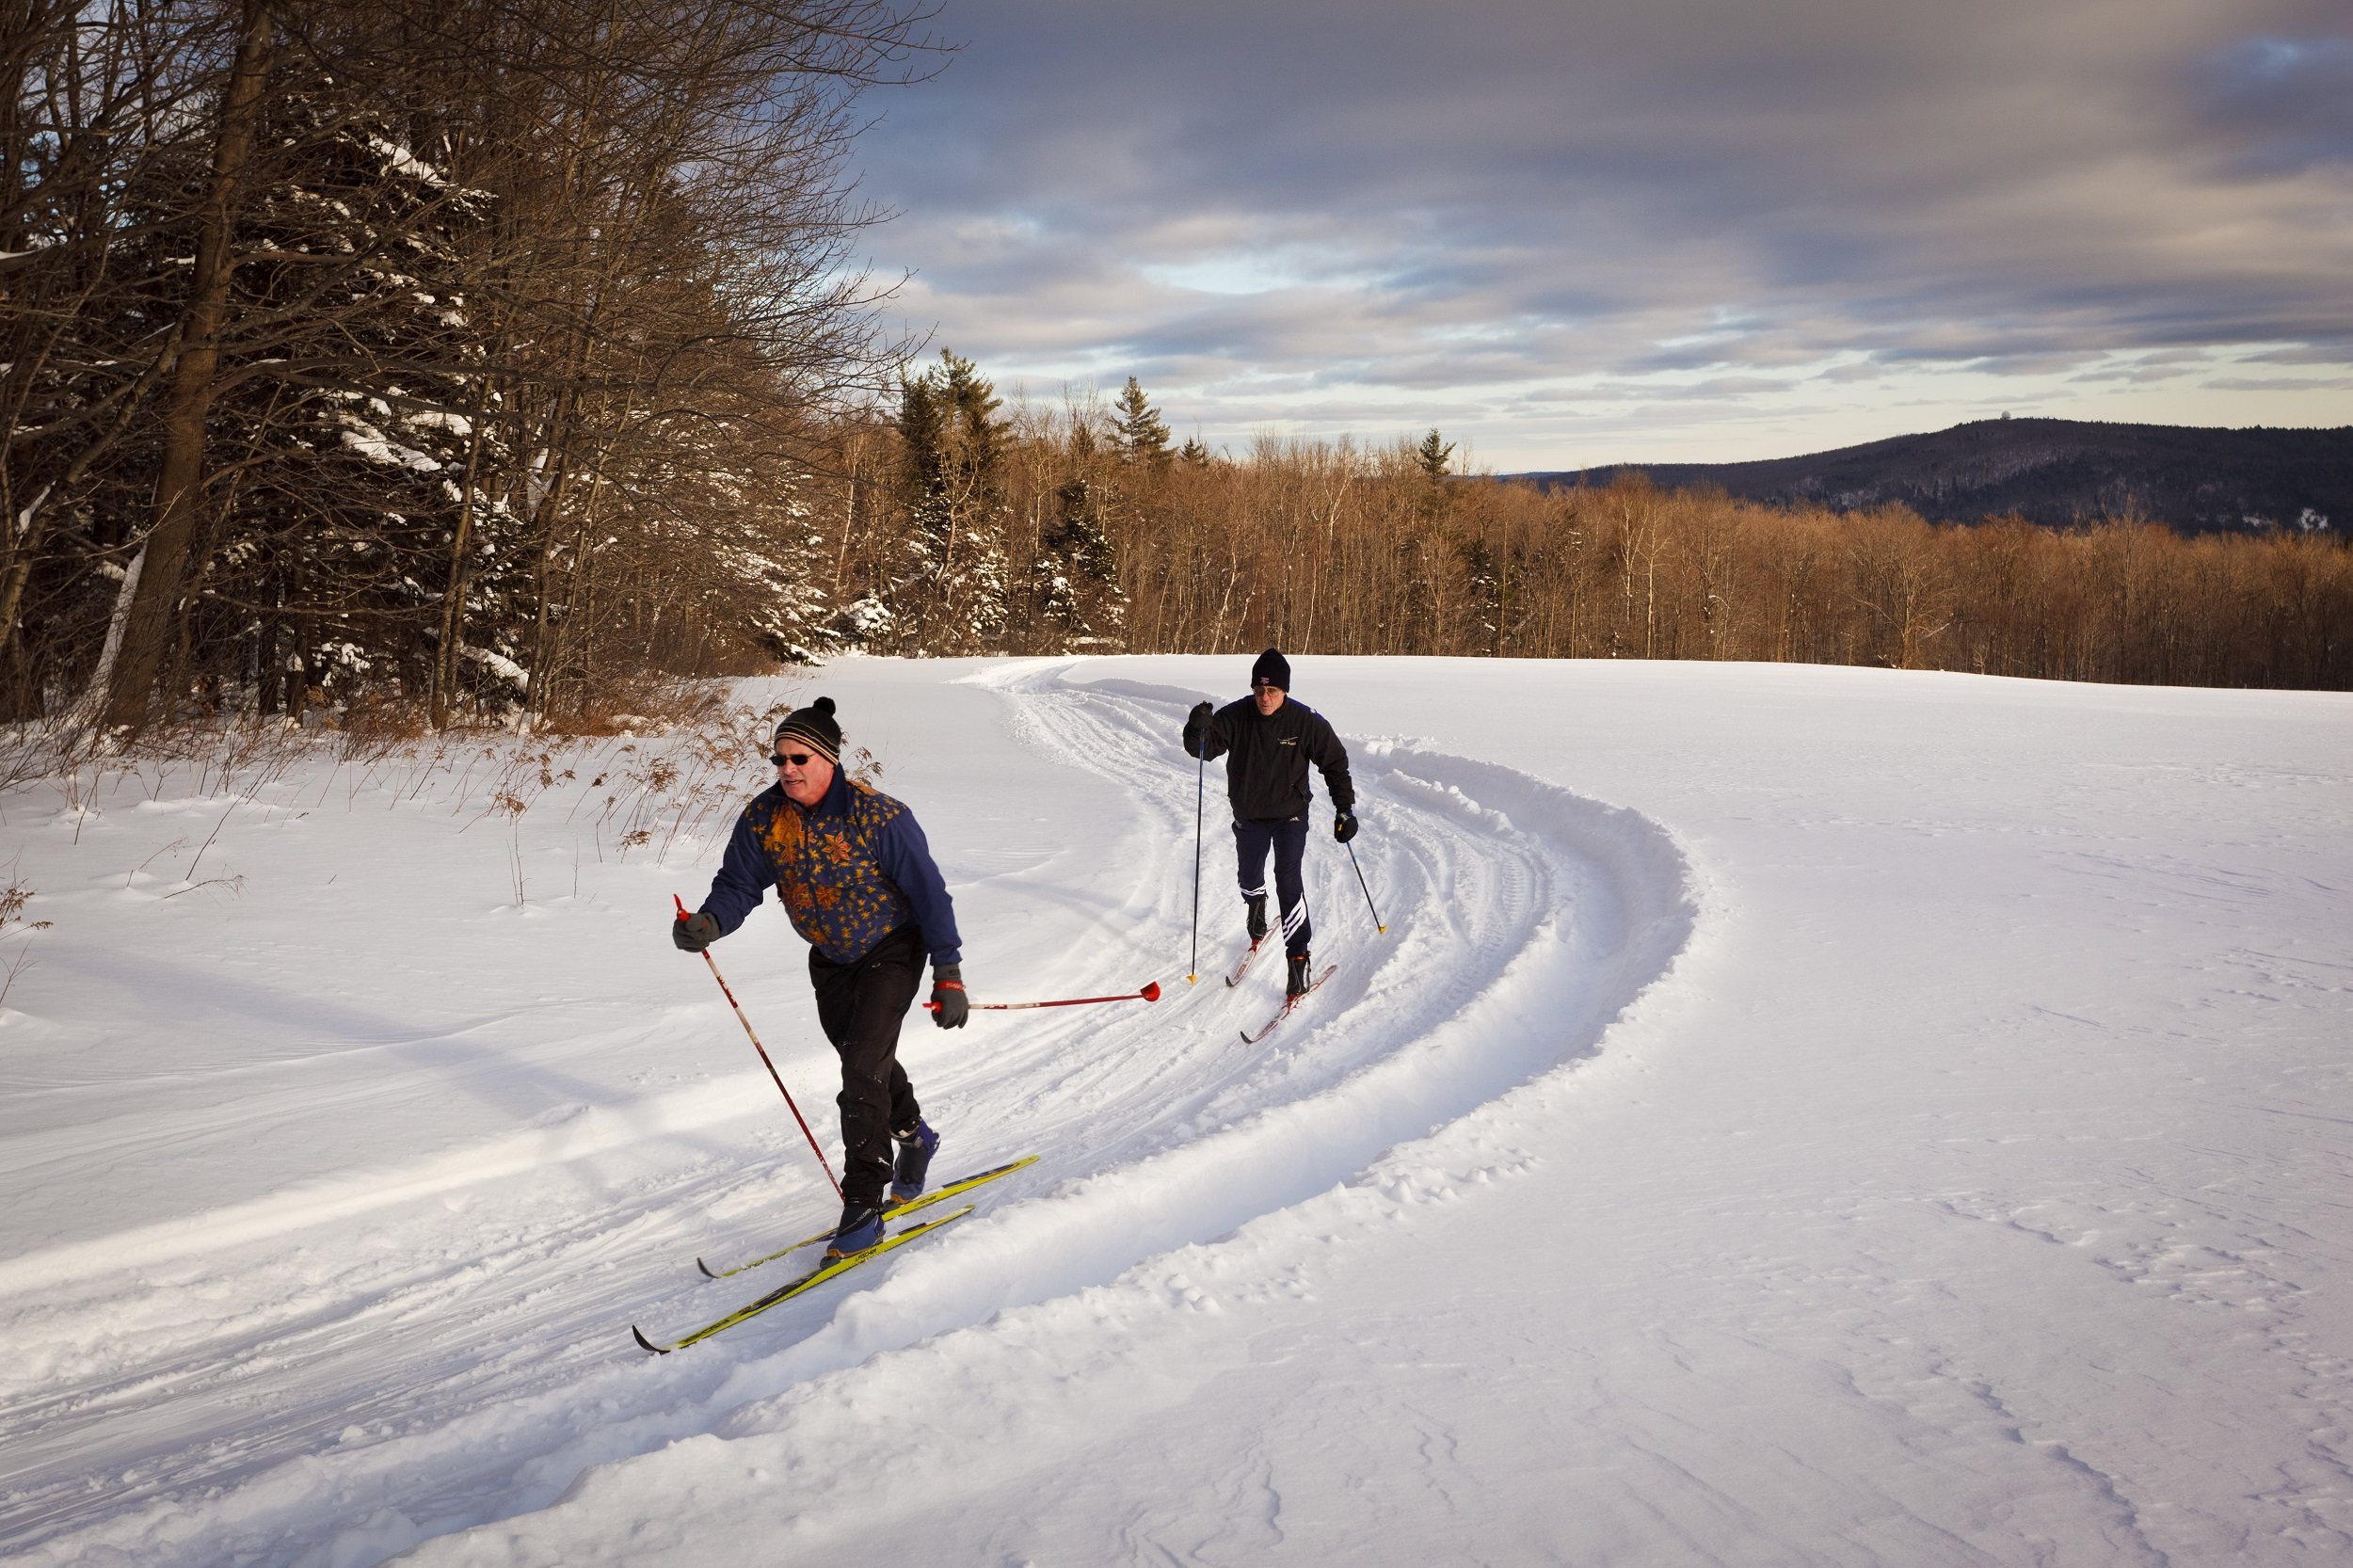 Two men cross country skiing at the Notchview